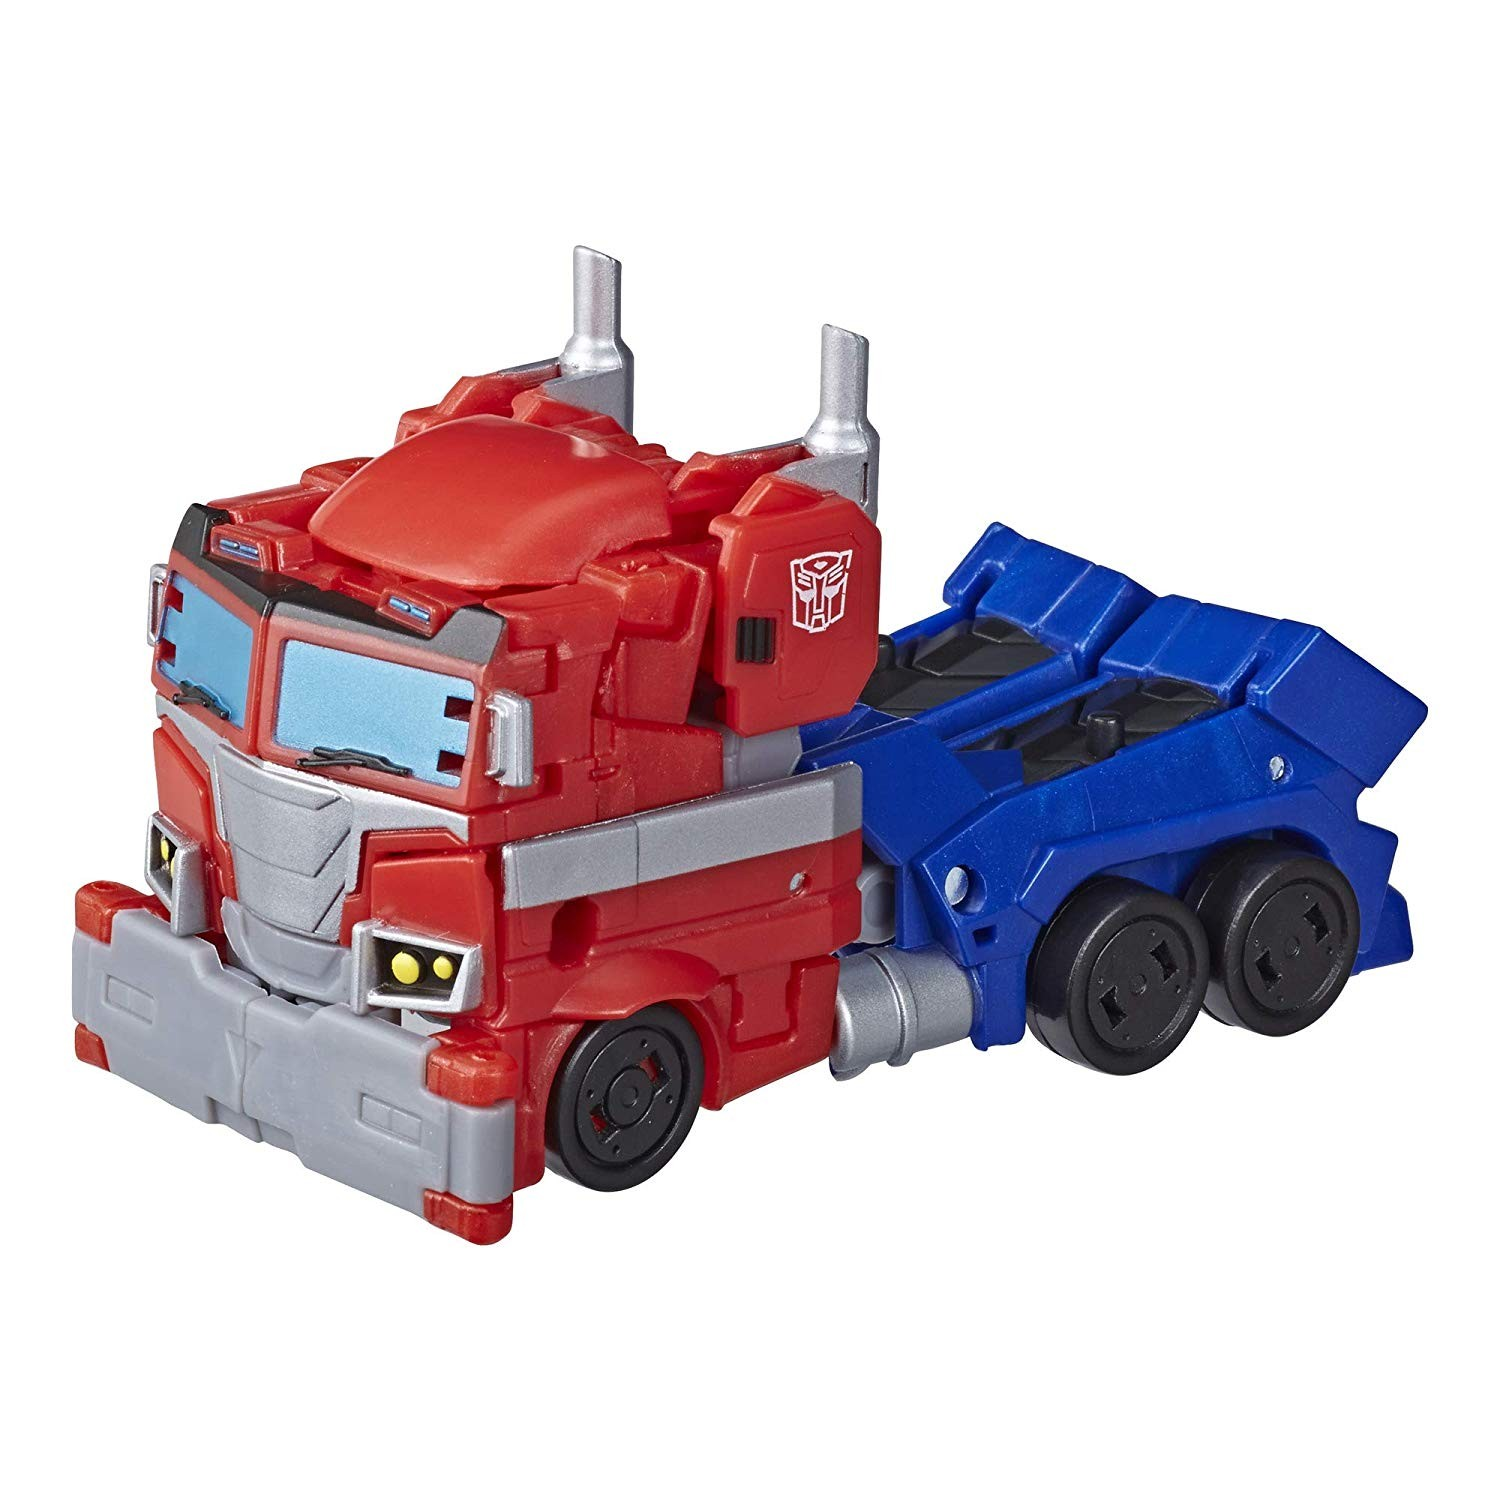 Transformers News: New Stock images for 2020 Cyberverse Deluxe Megatron and Optimus